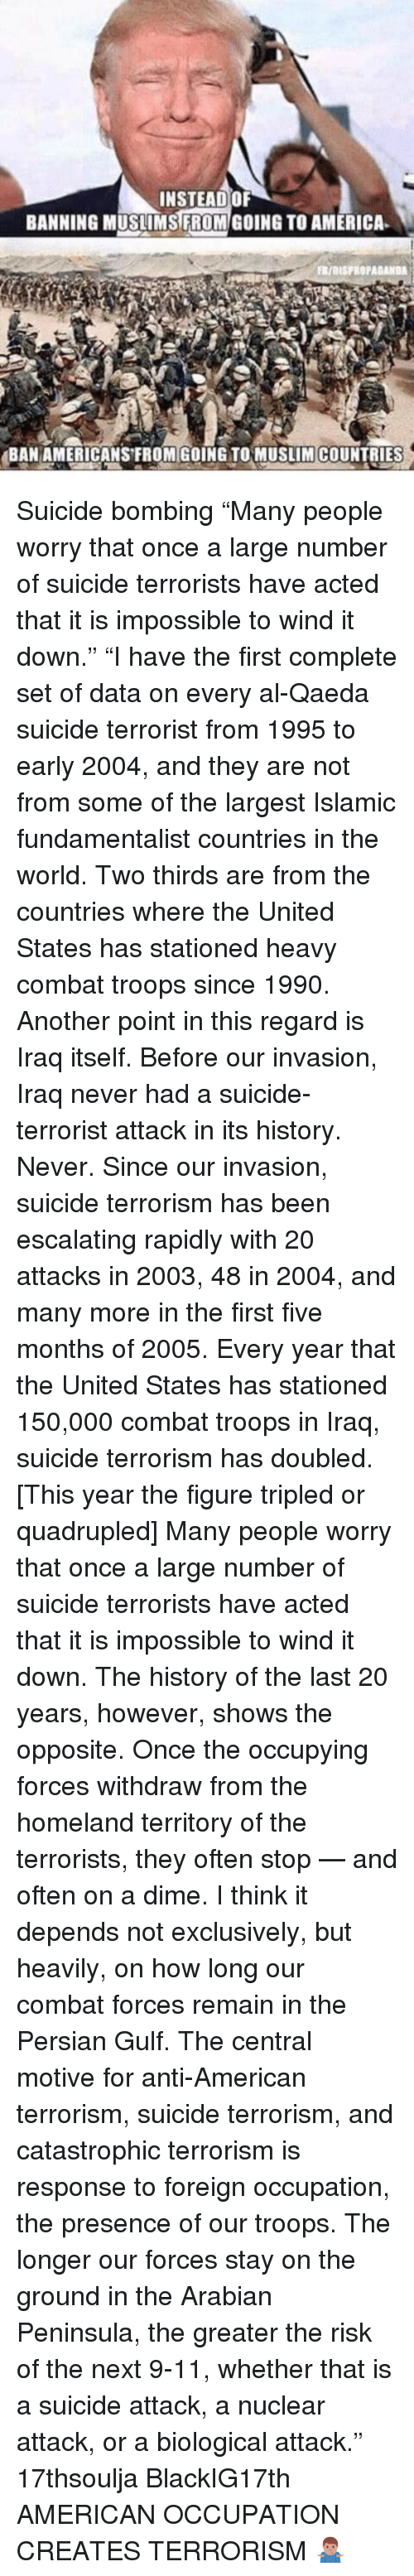 """9/11, Memes, and Homeland: INSTEAD OF  BANNING MUSLIMS FROM GOING TO AMERICA  FR/aISFROPAGANDA  BAN AMERICANS FROM GOING TO MUSLIM COUNTRIES Suicide bombing """"Many people worry that once a large number of suicide terrorists have acted that it is impossible to wind it down."""" """"I have the first complete set of data on every al-Qaeda suicide terrorist from 1995 to early 2004, and they are not from some of the largest Islamic fundamentalist countries in the world. Two thirds are from the countries where the United States has stationed heavy combat troops since 1990. Another point in this regard is Iraq itself. Before our invasion, Iraq never had a suicide-terrorist attack in its history. Never. Since our invasion, suicide terrorism has been escalating rapidly with 20 attacks in 2003, 48 in 2004, and many more in the first five months of 2005. Every year that the United States has stationed 150,000 combat troops in Iraq, suicide terrorism has doubled. [This year the figure tripled or quadrupled] Many people worry that once a large number of suicide terrorists have acted that it is impossible to wind it down. The history of the last 20 years, however, shows the opposite. Once the occupying forces withdraw from the homeland territory of the terrorists, they often stop — and often on a dime. I think it depends not exclusively, but heavily, on how long our combat forces remain in the Persian Gulf. The central motive for anti-American terrorism, suicide terrorism, and catastrophic terrorism is response to foreign occupation, the presence of our troops. The longer our forces stay on the ground in the Arabian Peninsula, the greater the risk of the next 9-11, whether that is a suicide attack, a nuclear attack, or a biological attack."""" 17thsoulja BlackIG17th AMERICAN OCCUPATION CREATES TERRORISM 🤷🏽♂️"""